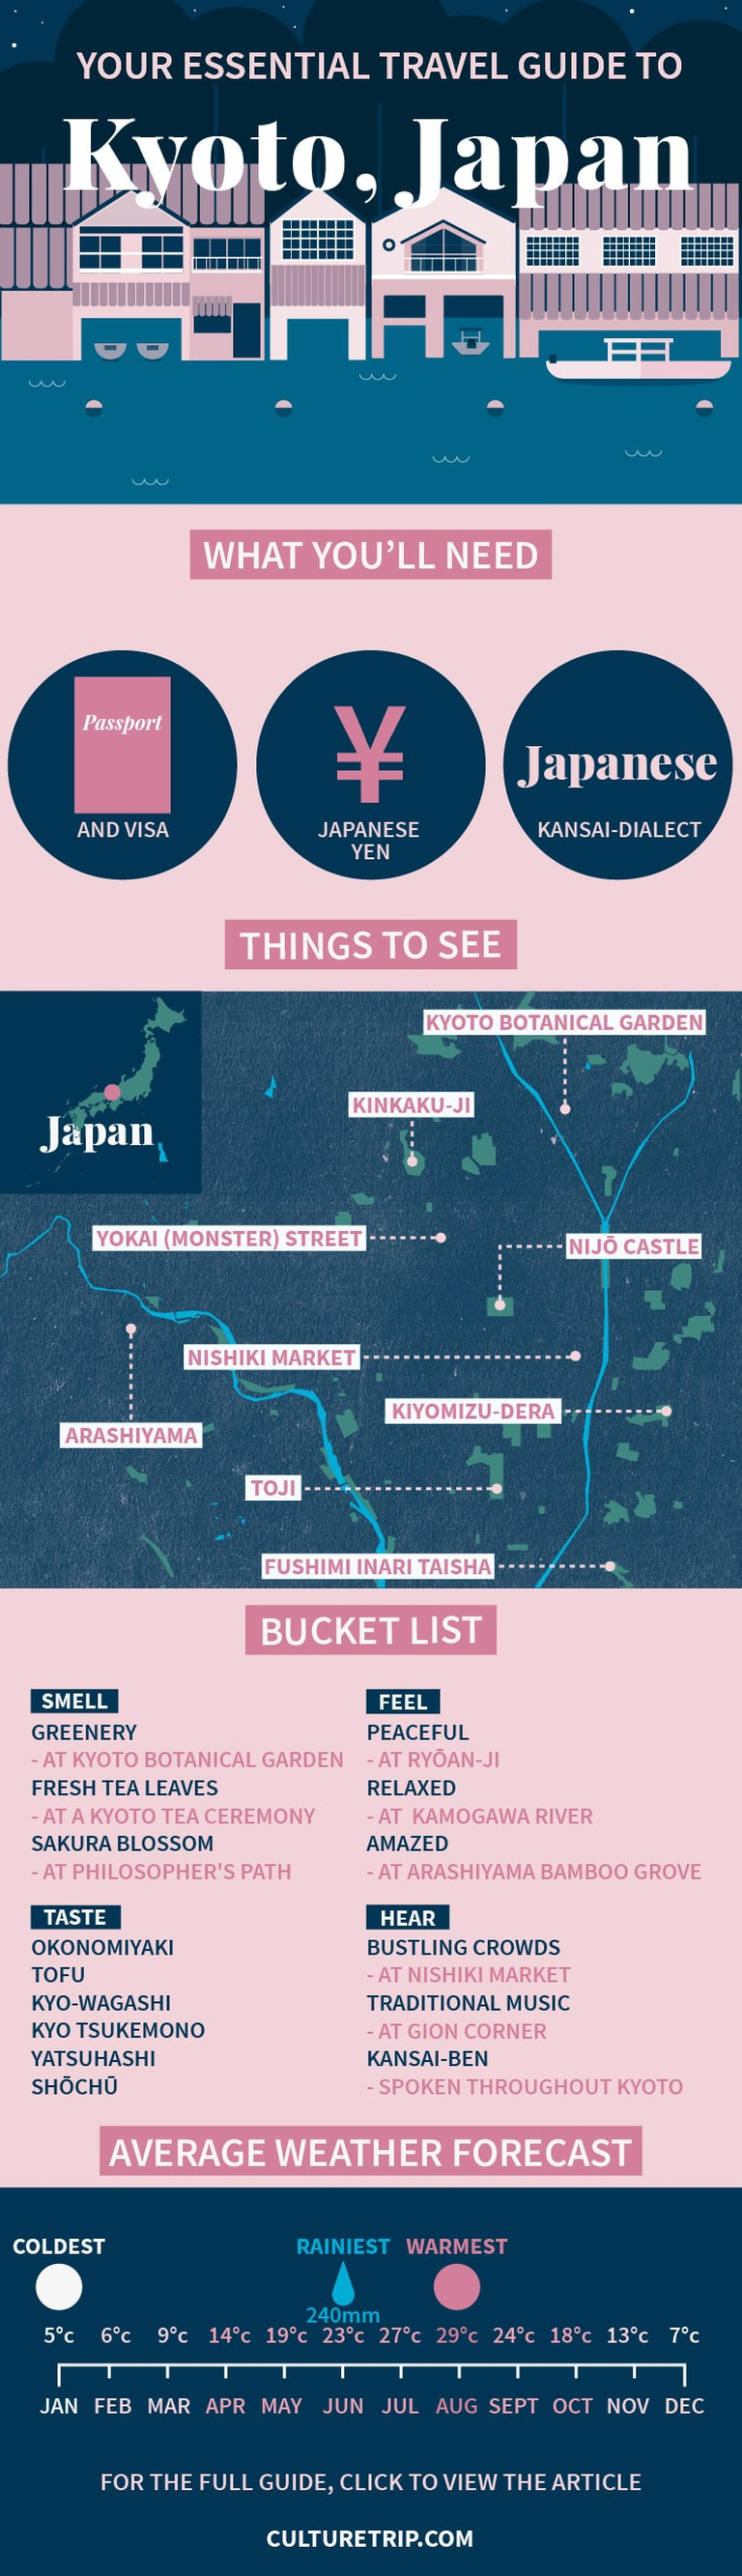 A travel guide for planning your trip to Kyoto, Japan.